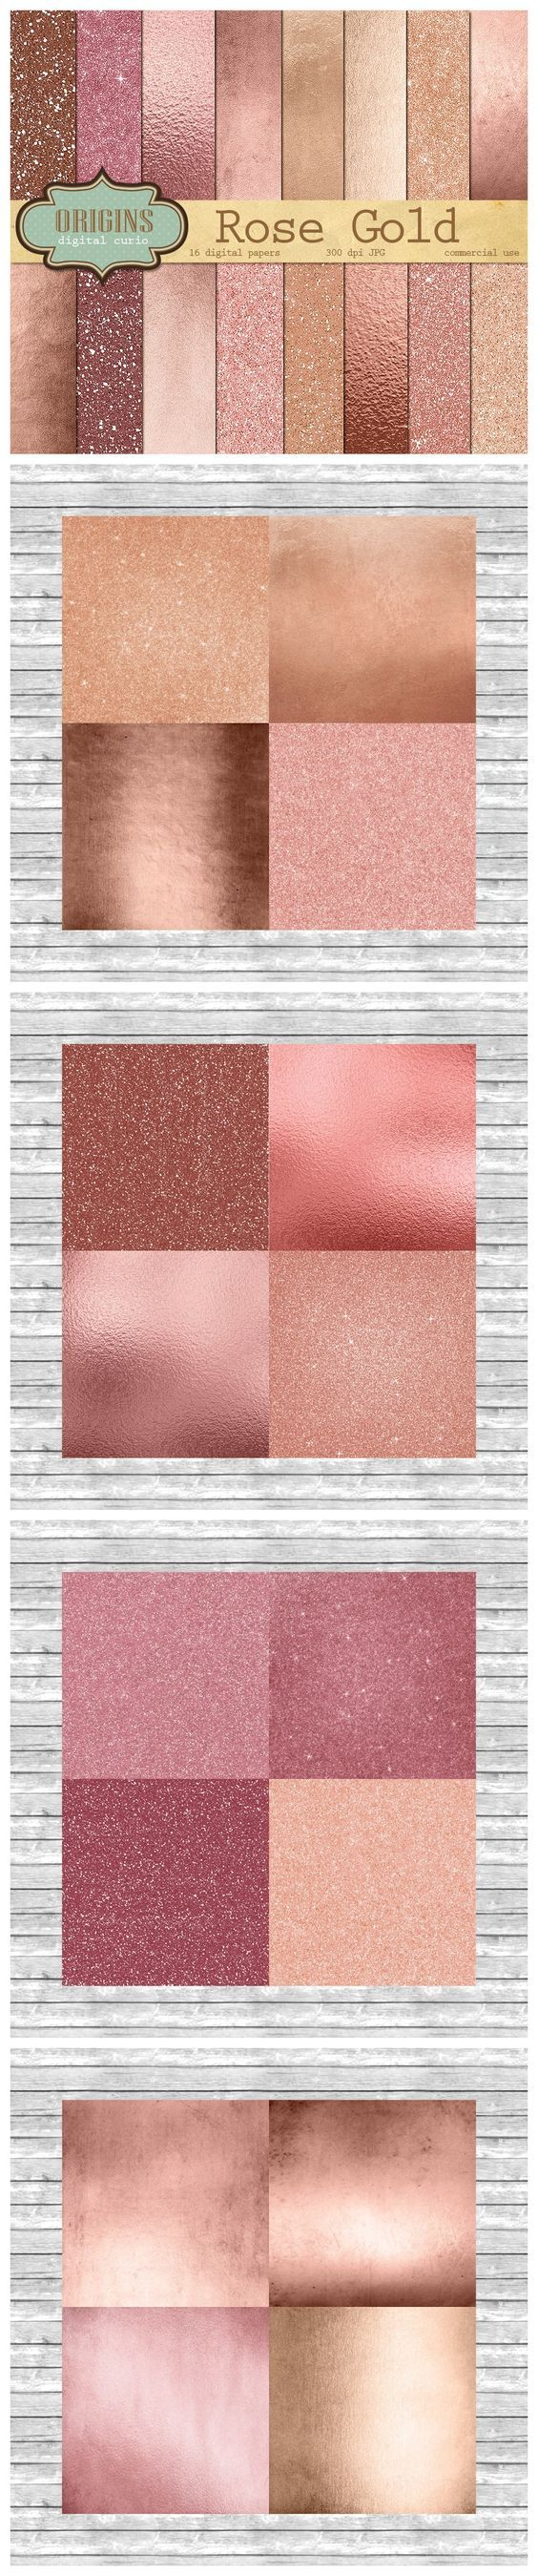 Rose gold colors!: